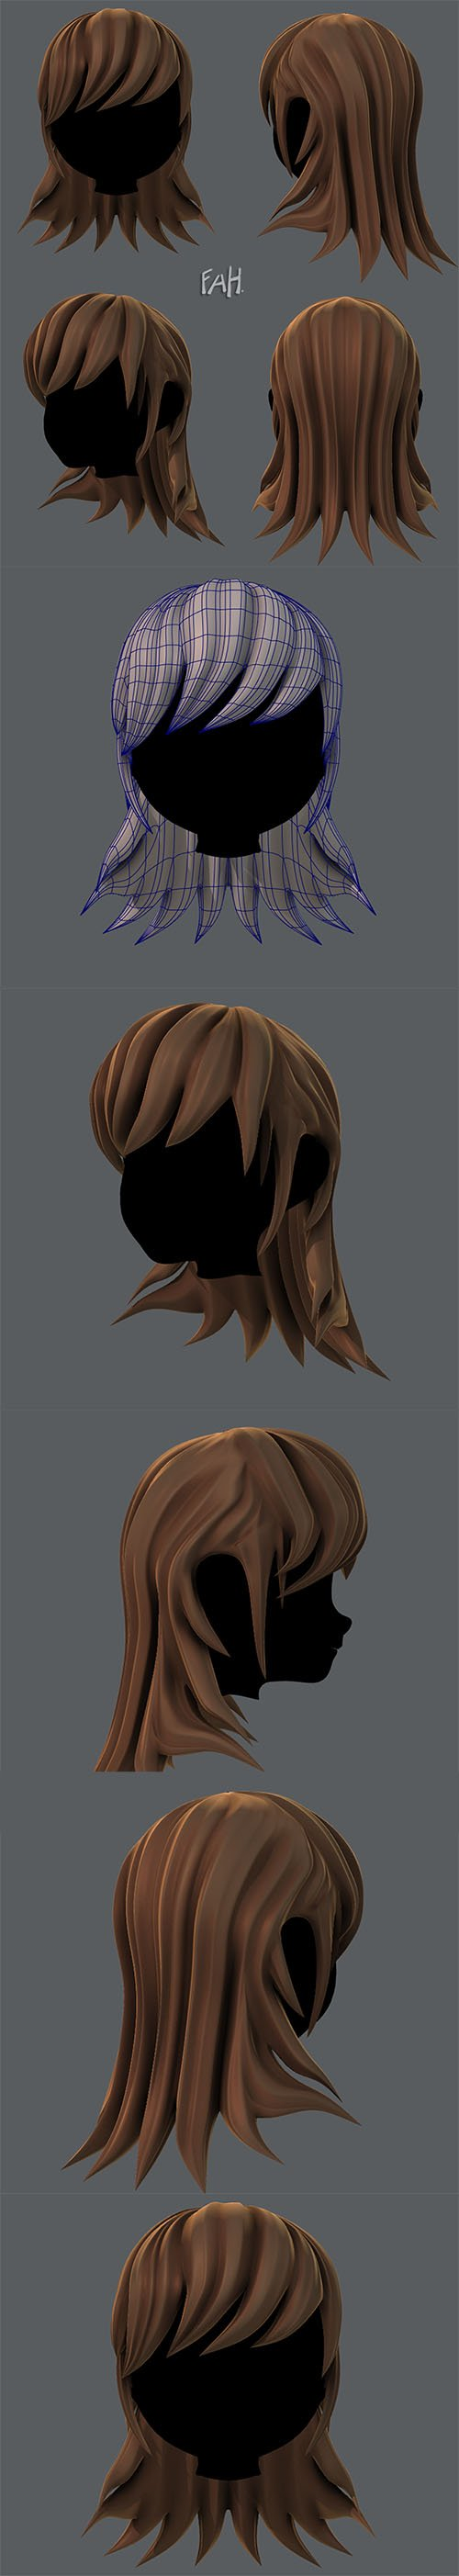 Cuberbrush - 3D Hair style for girl V04